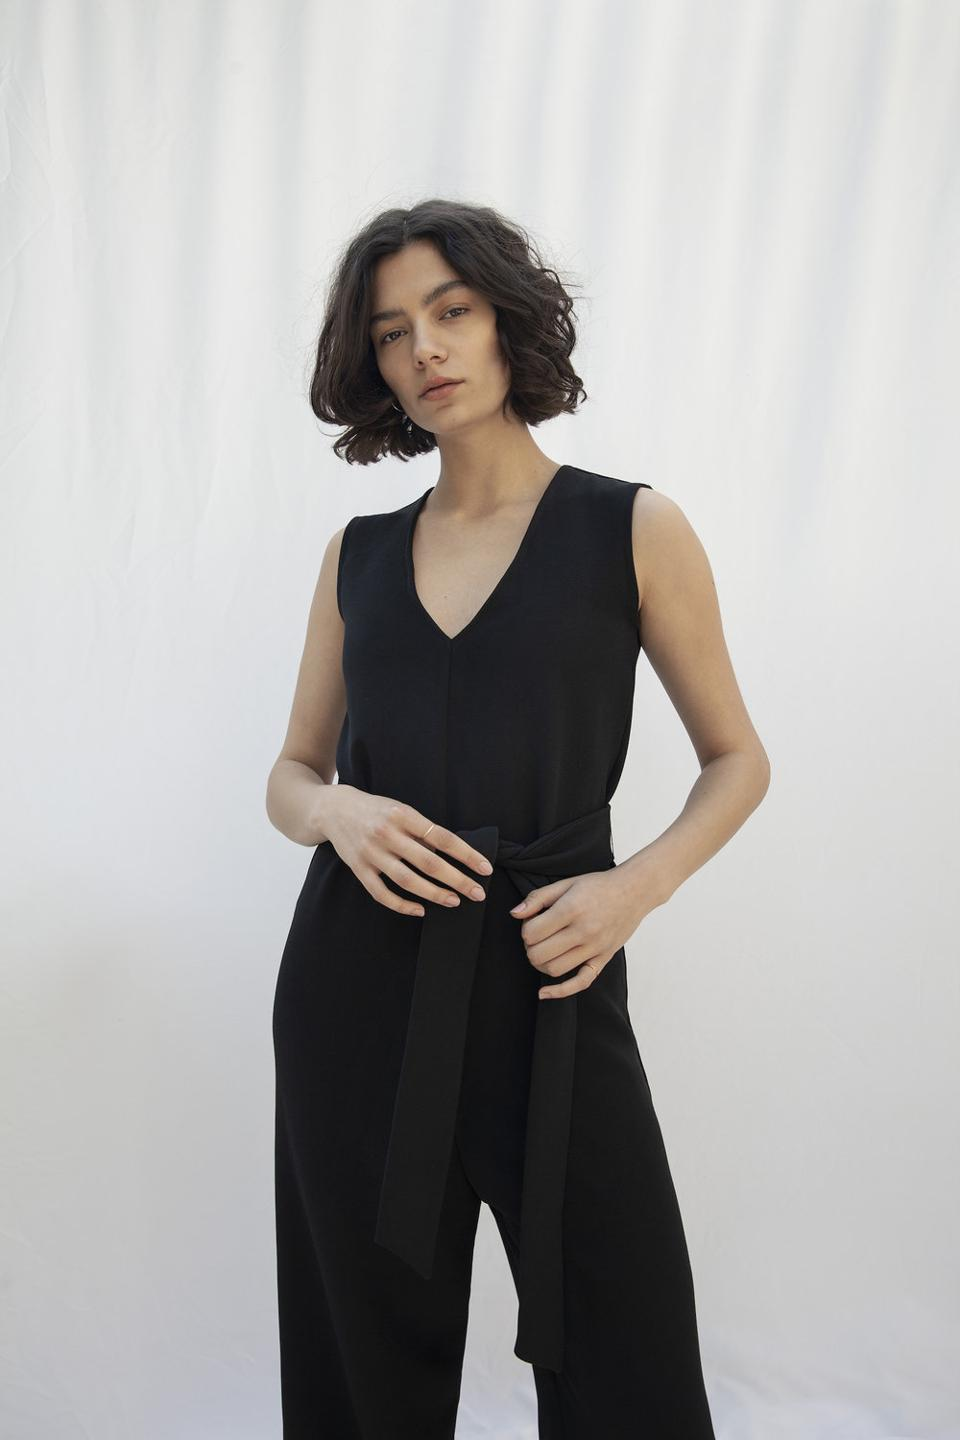 Soho Ethical Jumpsuit in Black by Vanesa Vinhas available at Kool and Konscious